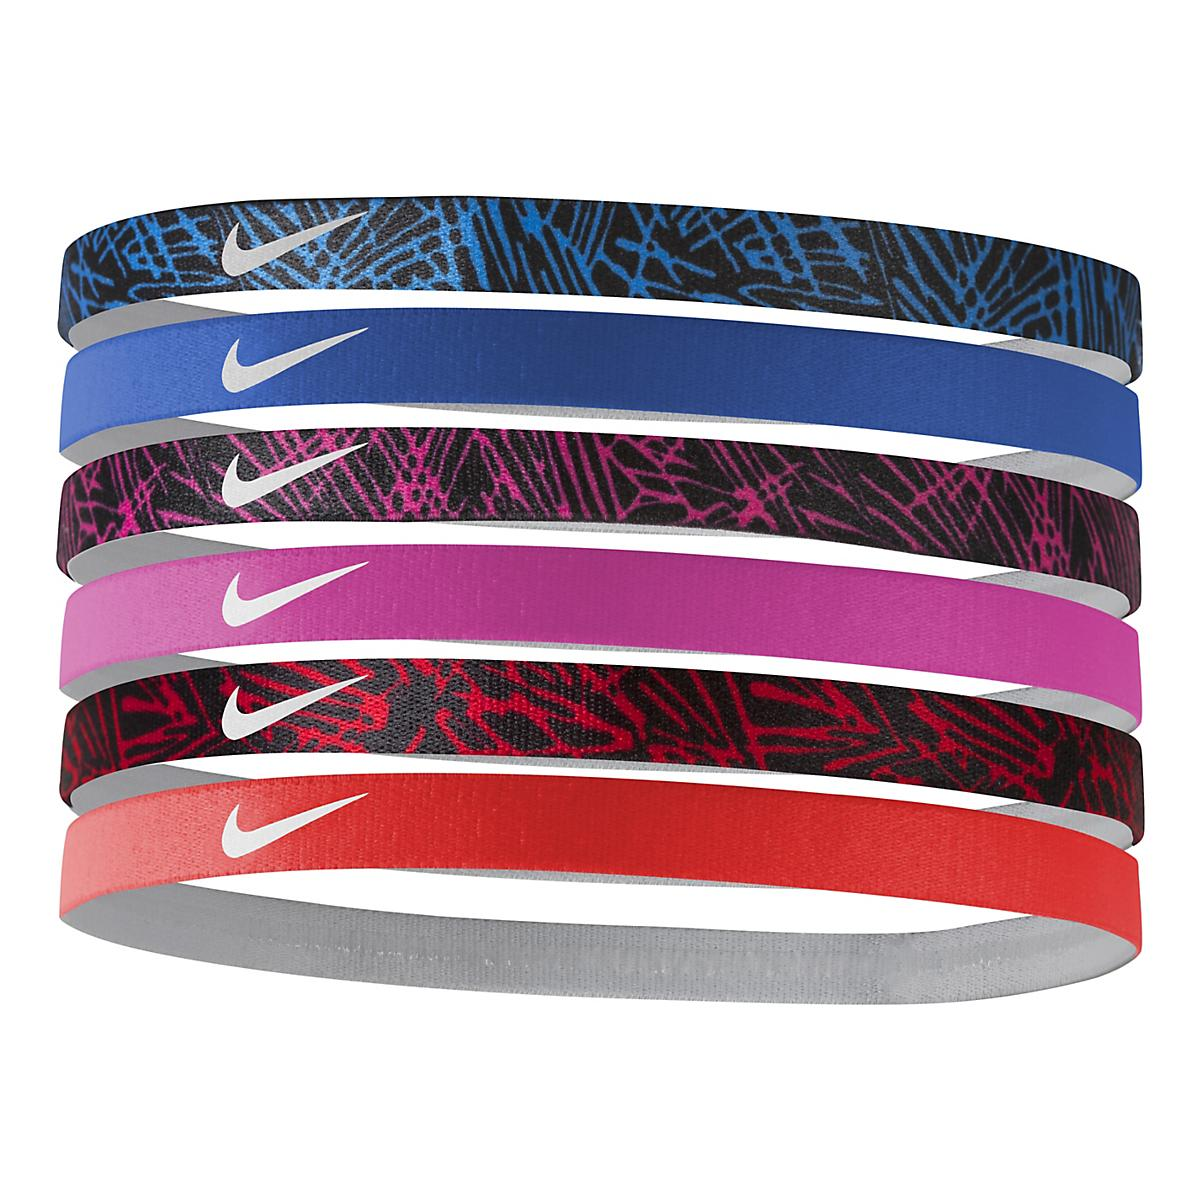 Womens Nike Printed Headbands 6 pack Headwear at Road Runner Sports a4da49ddfbd